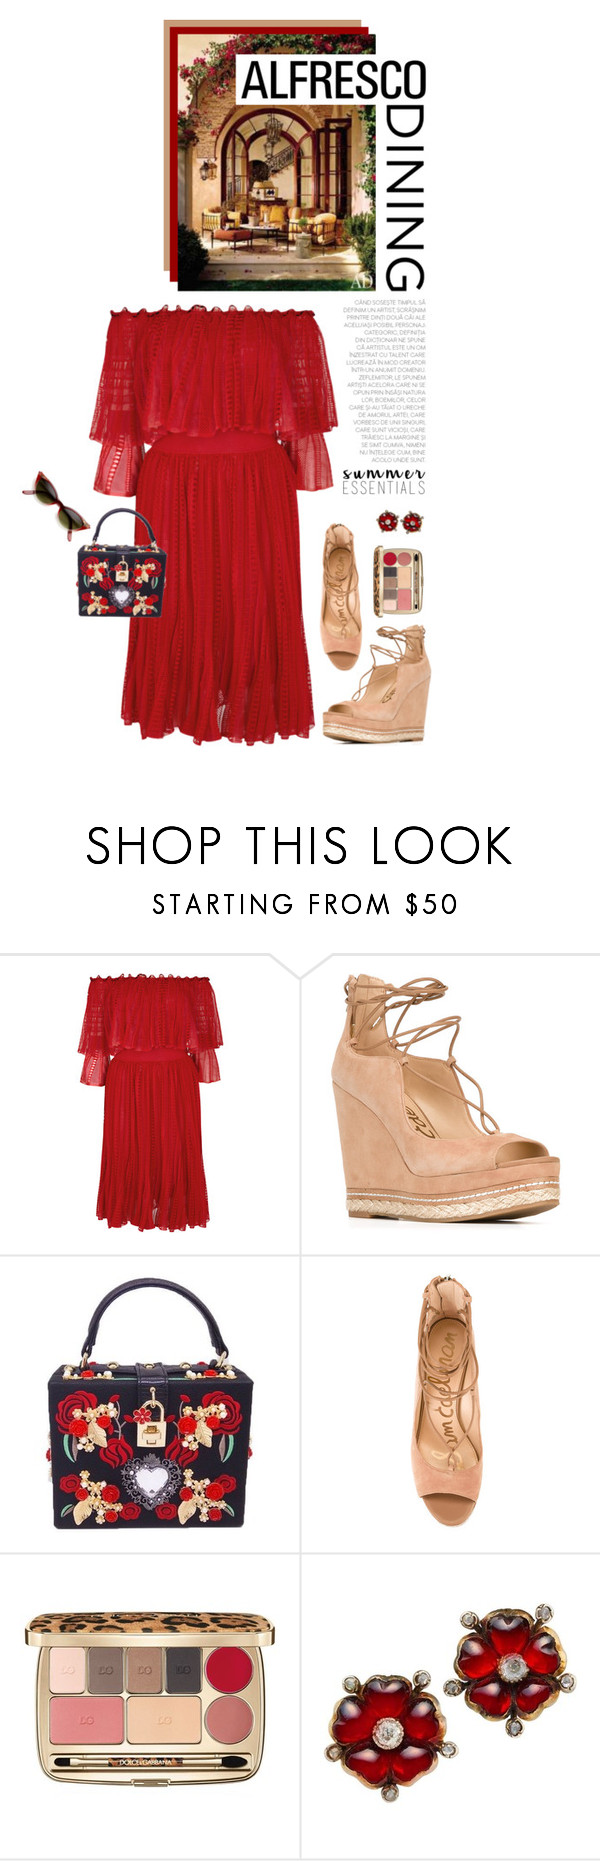 """Easy Breezy: Alfresco Dining"" by shortyluv718 ❤ liked on Polyvore featuring Alexander McQueen, Sam Edelman, Dolce&Gabbana and alfrescodining"